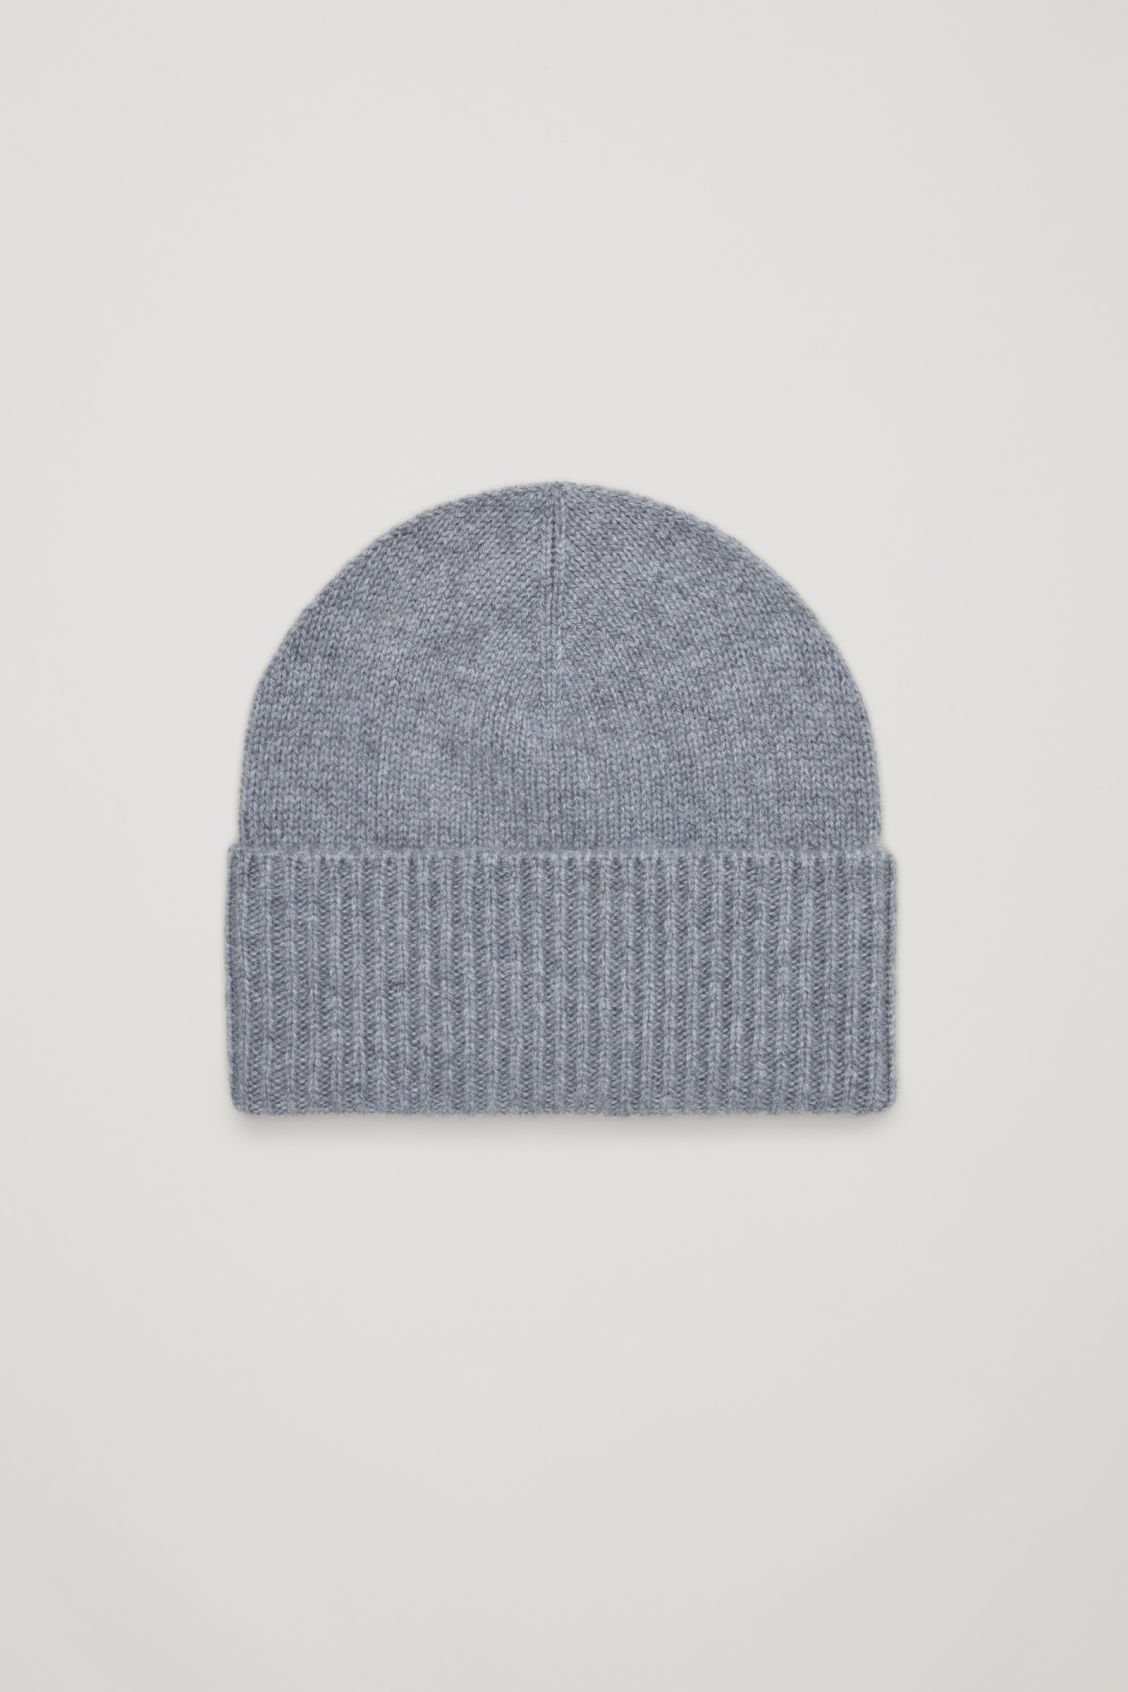 COS CASHMERE HAT WITH RIBBED EDGE 30d5043c172